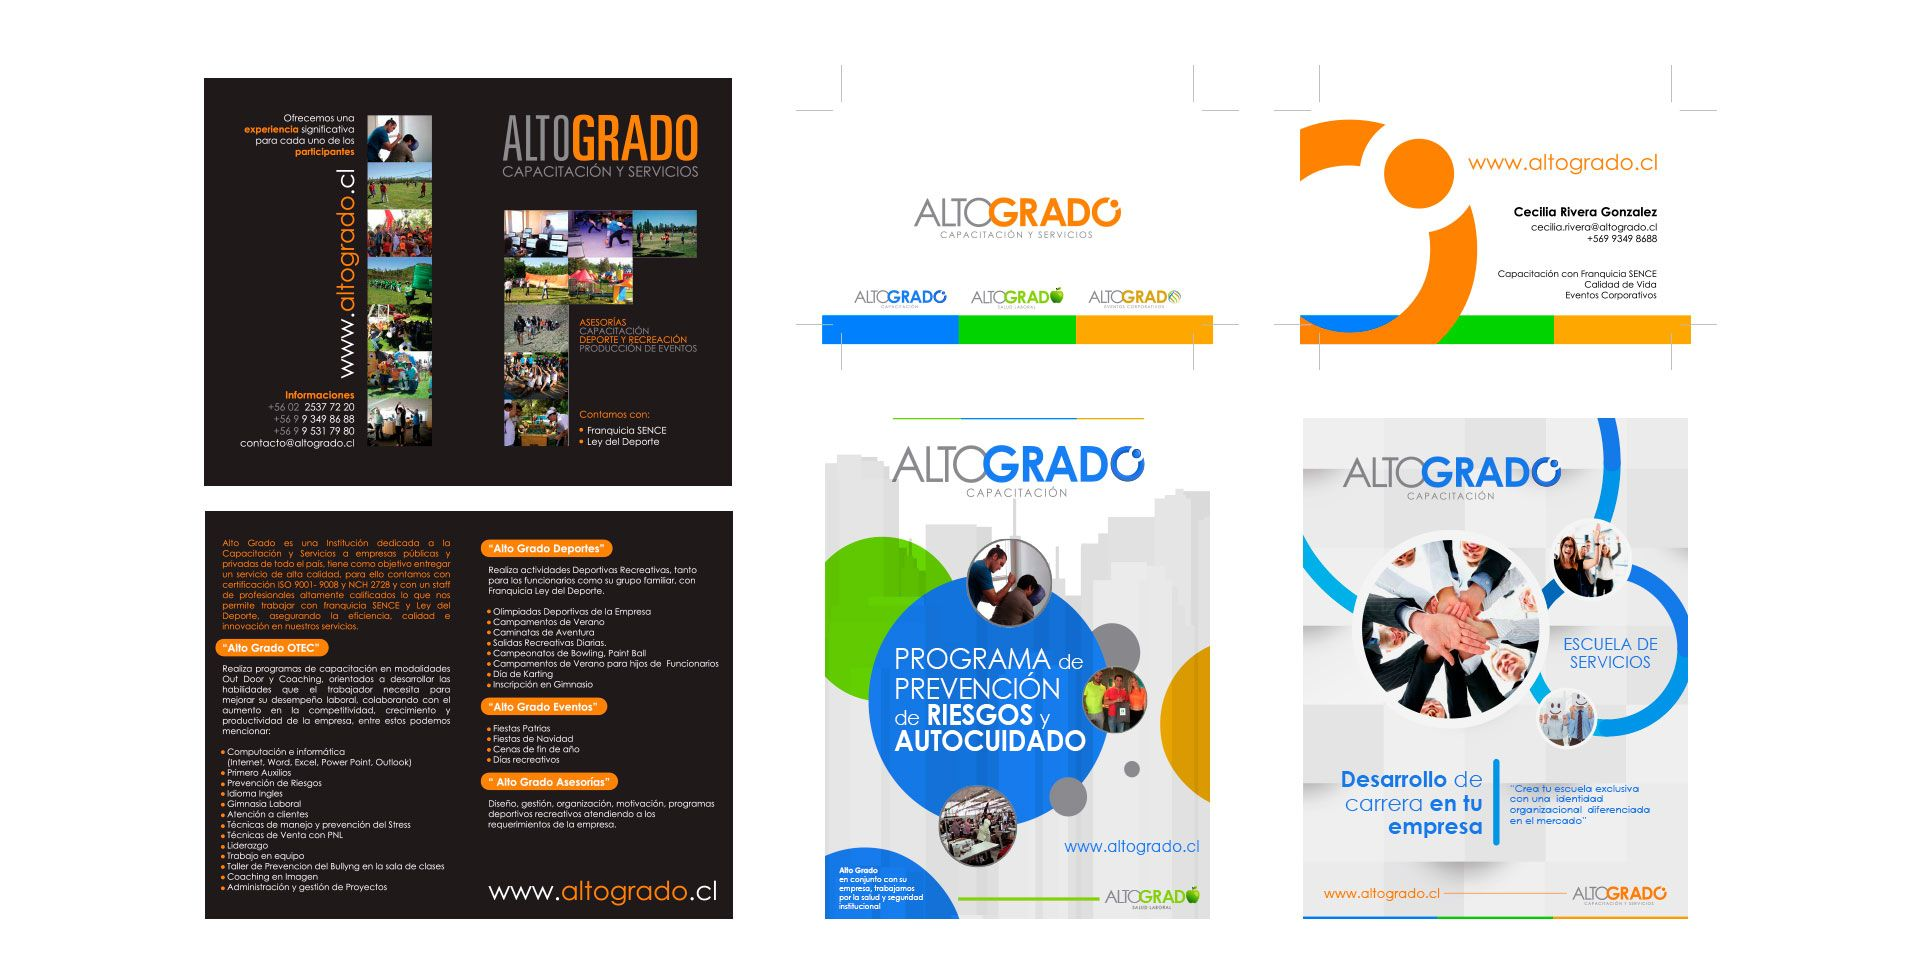 altogrado-imprenta-001